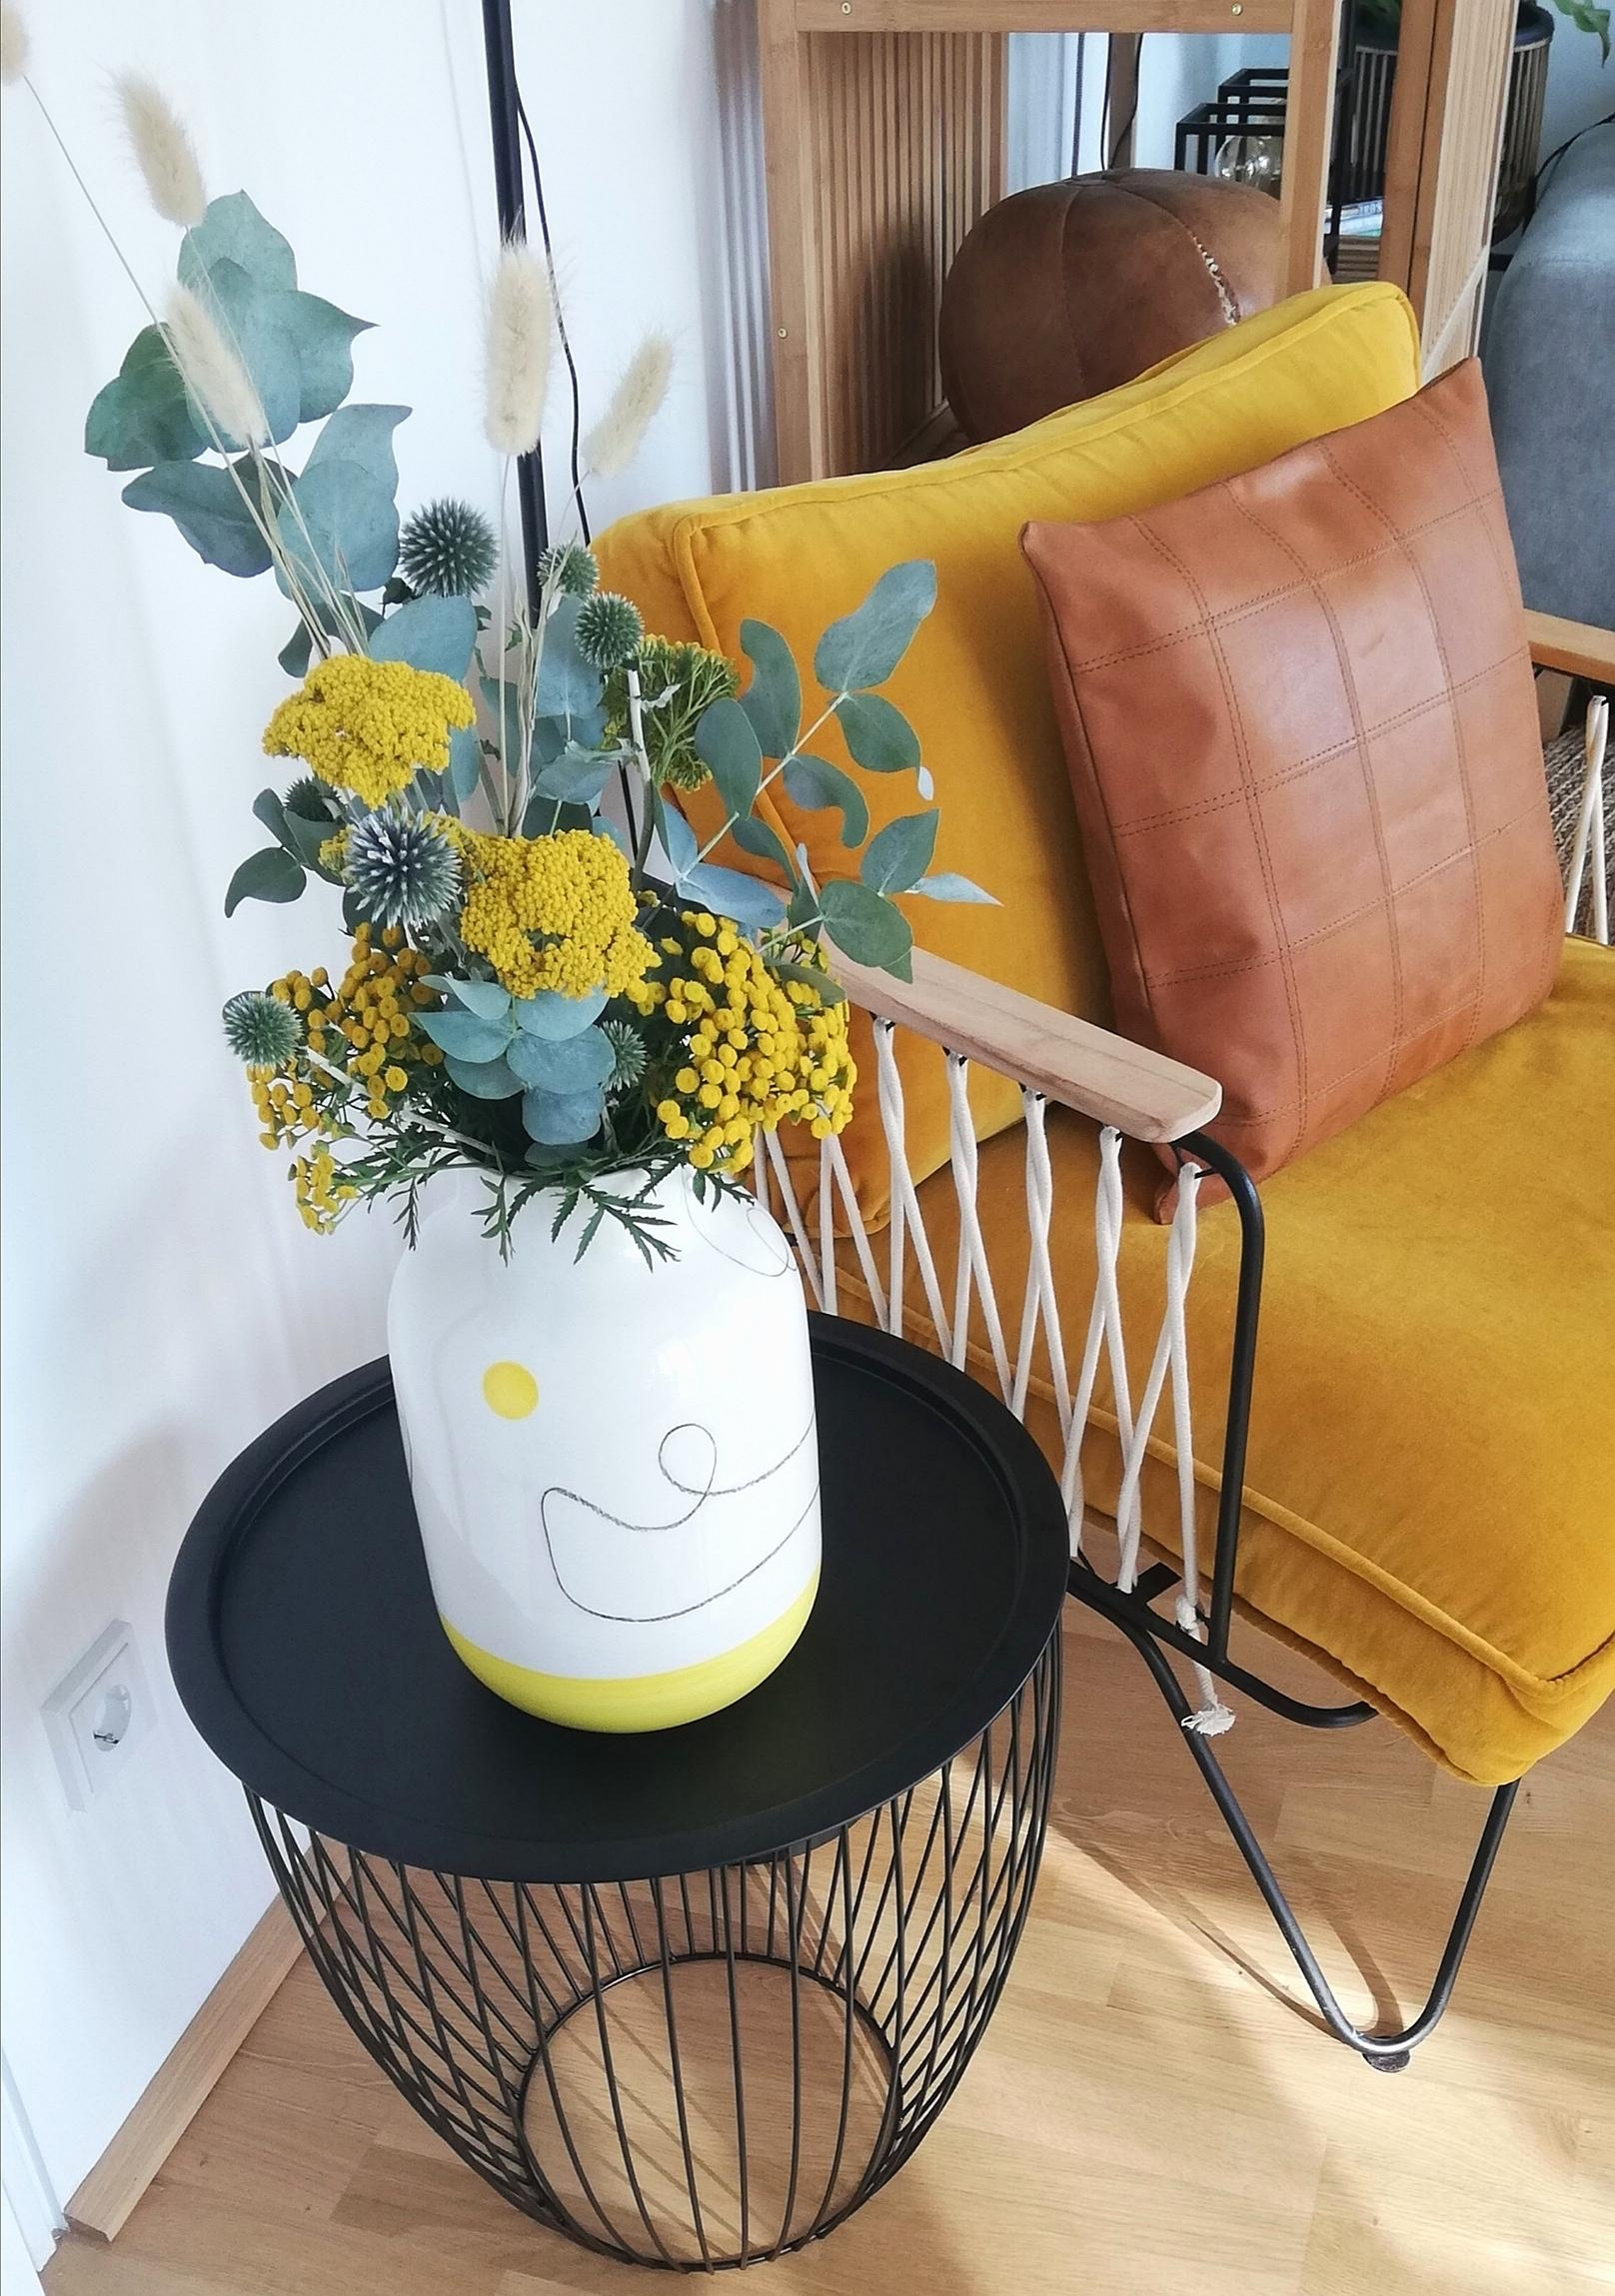 #motelamiio #vase #trockenblumen #decor #decoration #diy #homemade #blumendeko #flowers #living #interior #design